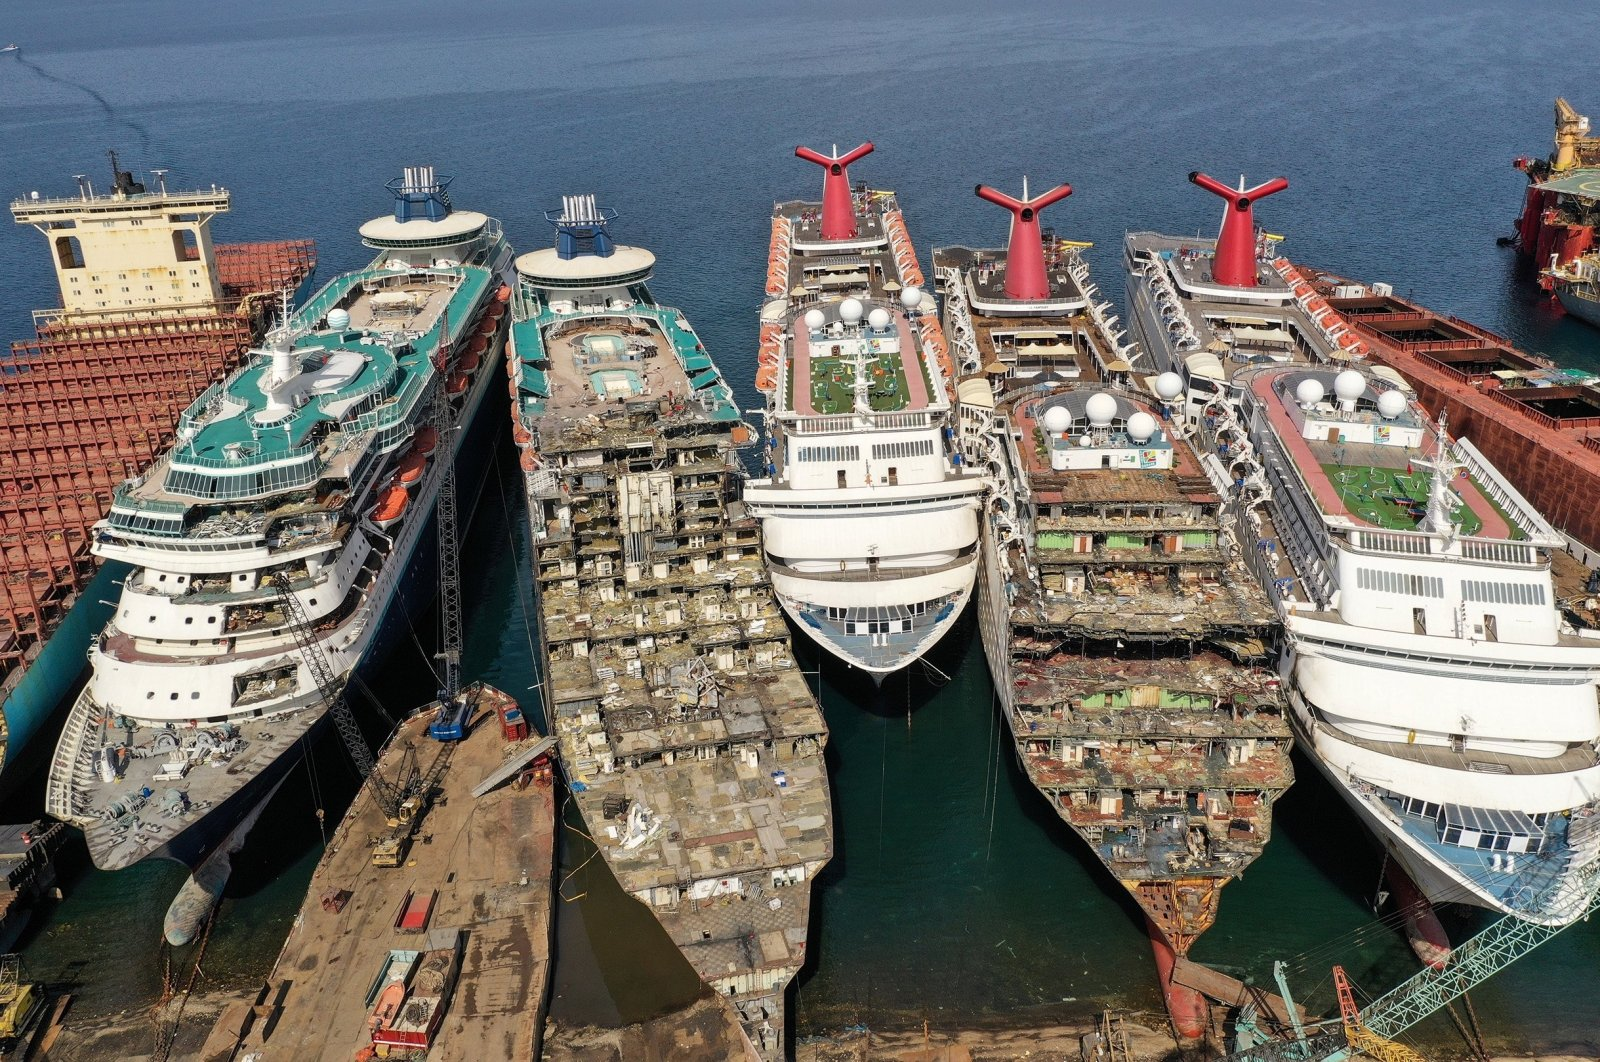 A drone image shows decommissioned cruise ships being dismantled at Aliağa ship breaking yard in Izmir, Turkey, Oct. 2, 2020. (Reuters Photo)